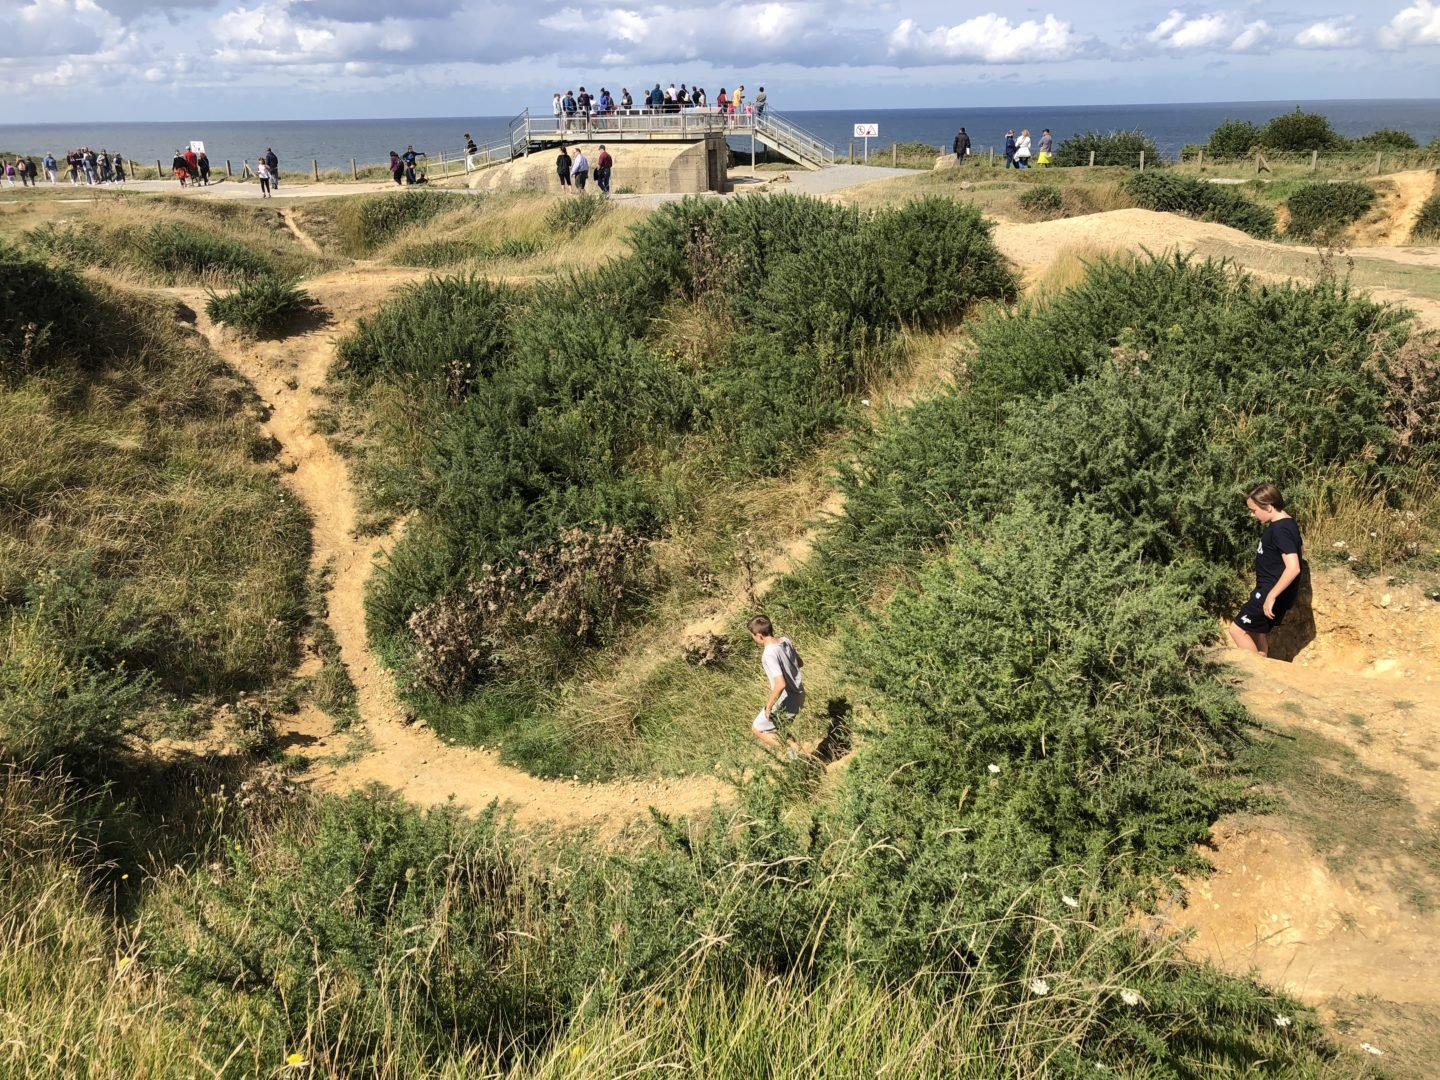 One Day Itinerary for the D day Normandy Beaches with Kids. Pointe du Hoc Bomb craters